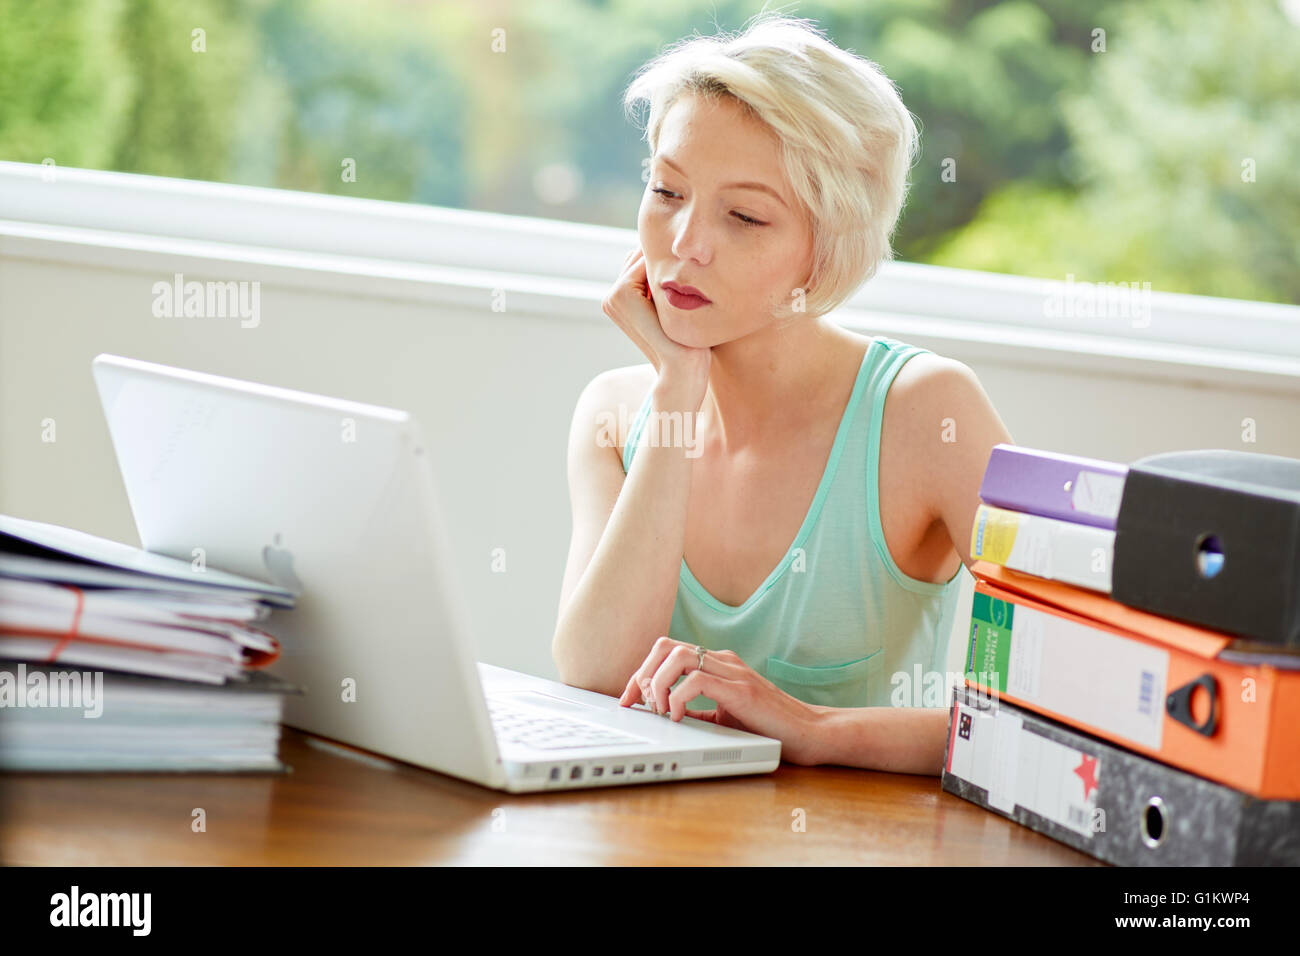 Girl studying - Stock Image